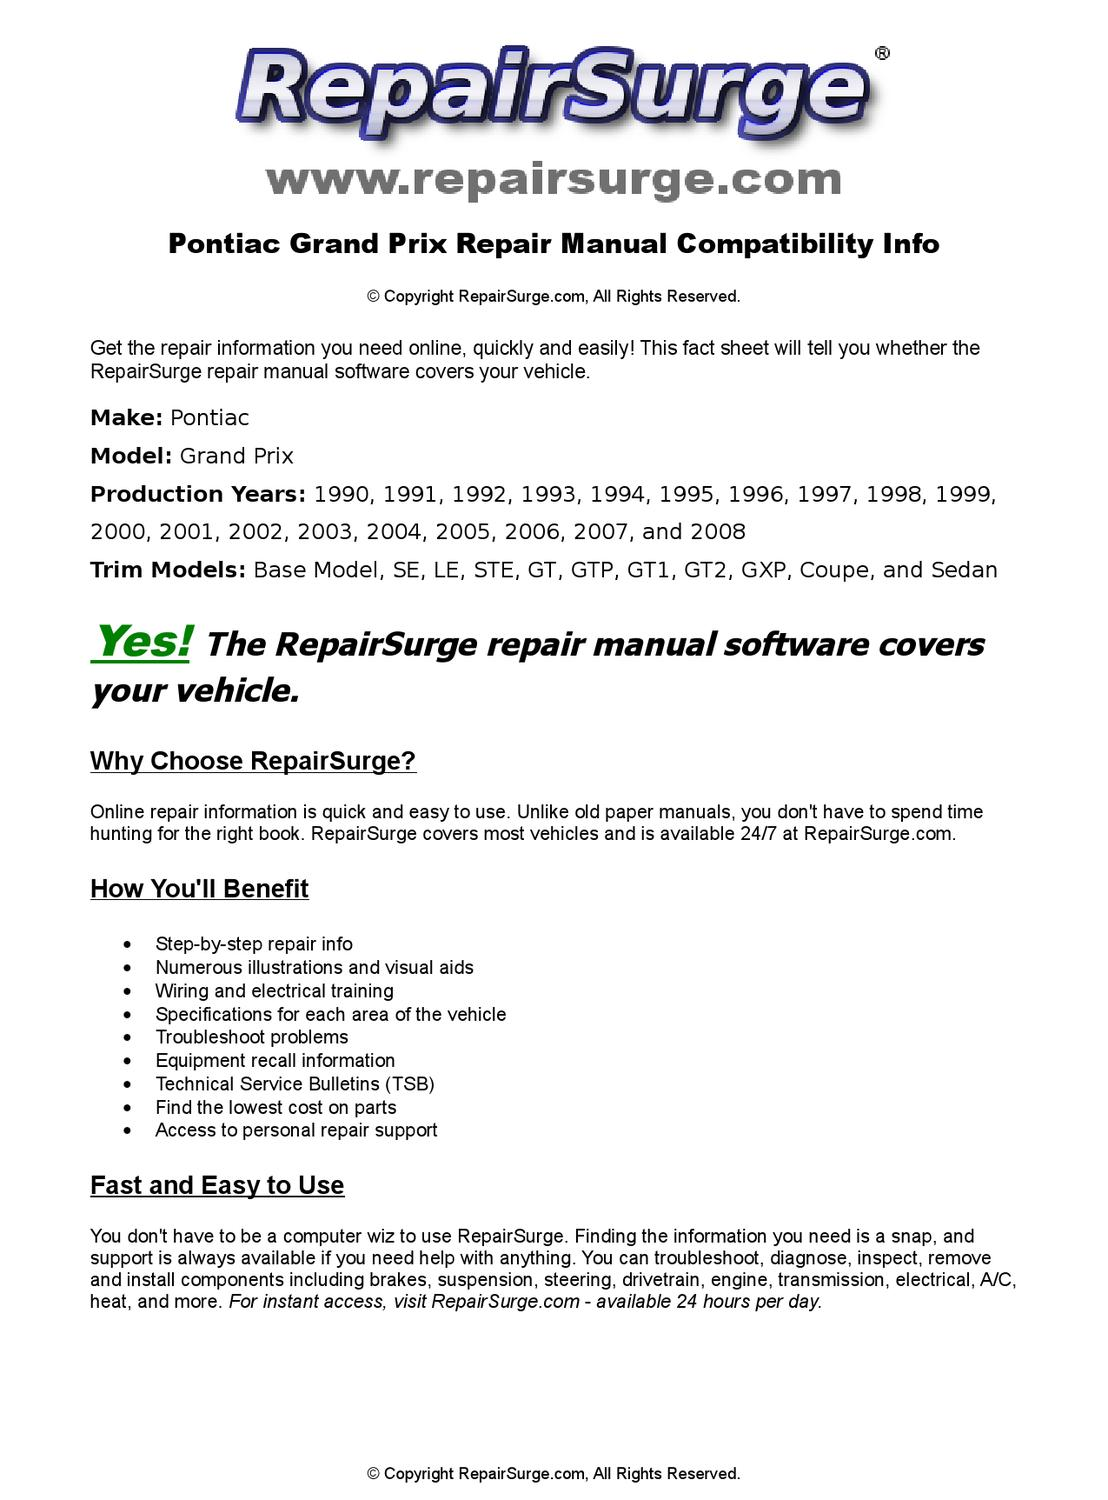 Pontiac Grand Prix Online Repair Manual For 1990, 1991, 1992, 1993, 1994,  1995, 1996, 1997, 1998, 19 by RepairSurge - issuu